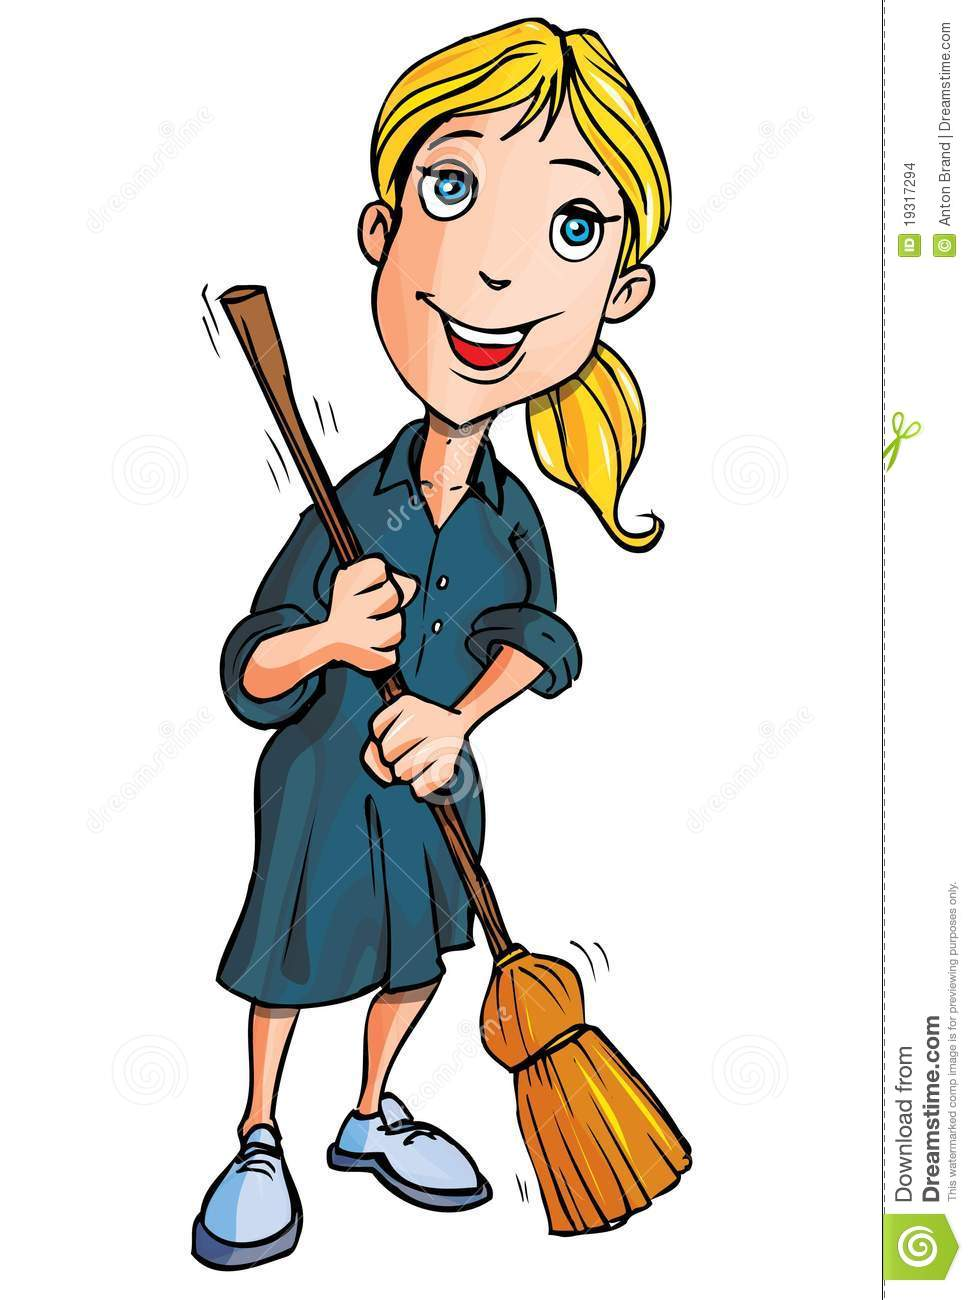 Cartoon Handyman With Tools Stock Images.